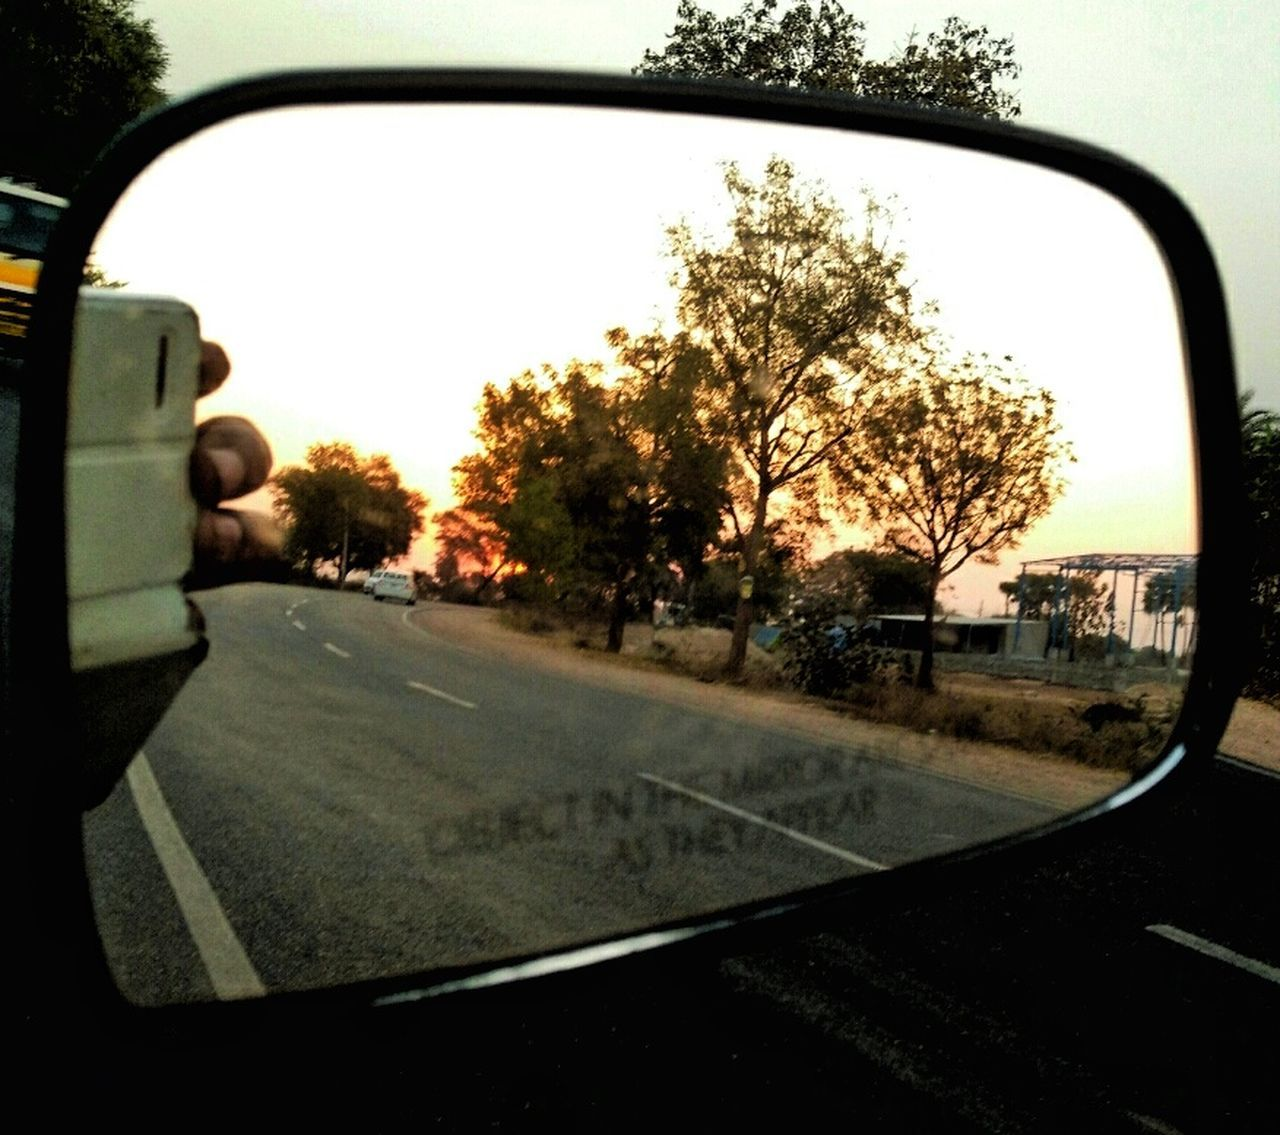 Land Vehicle Car Side-view Mirror Driving Mode Of Transport Vehicle Mirror Road Sunset Sunset Lovers Sunset_captures Eye Em Nature Lover Phoneography EyeEm Incredible India EyeEm Gallery Be With Someone That Makes You Happy.  With Love From India💚 truly..urs.. Nitin 😊